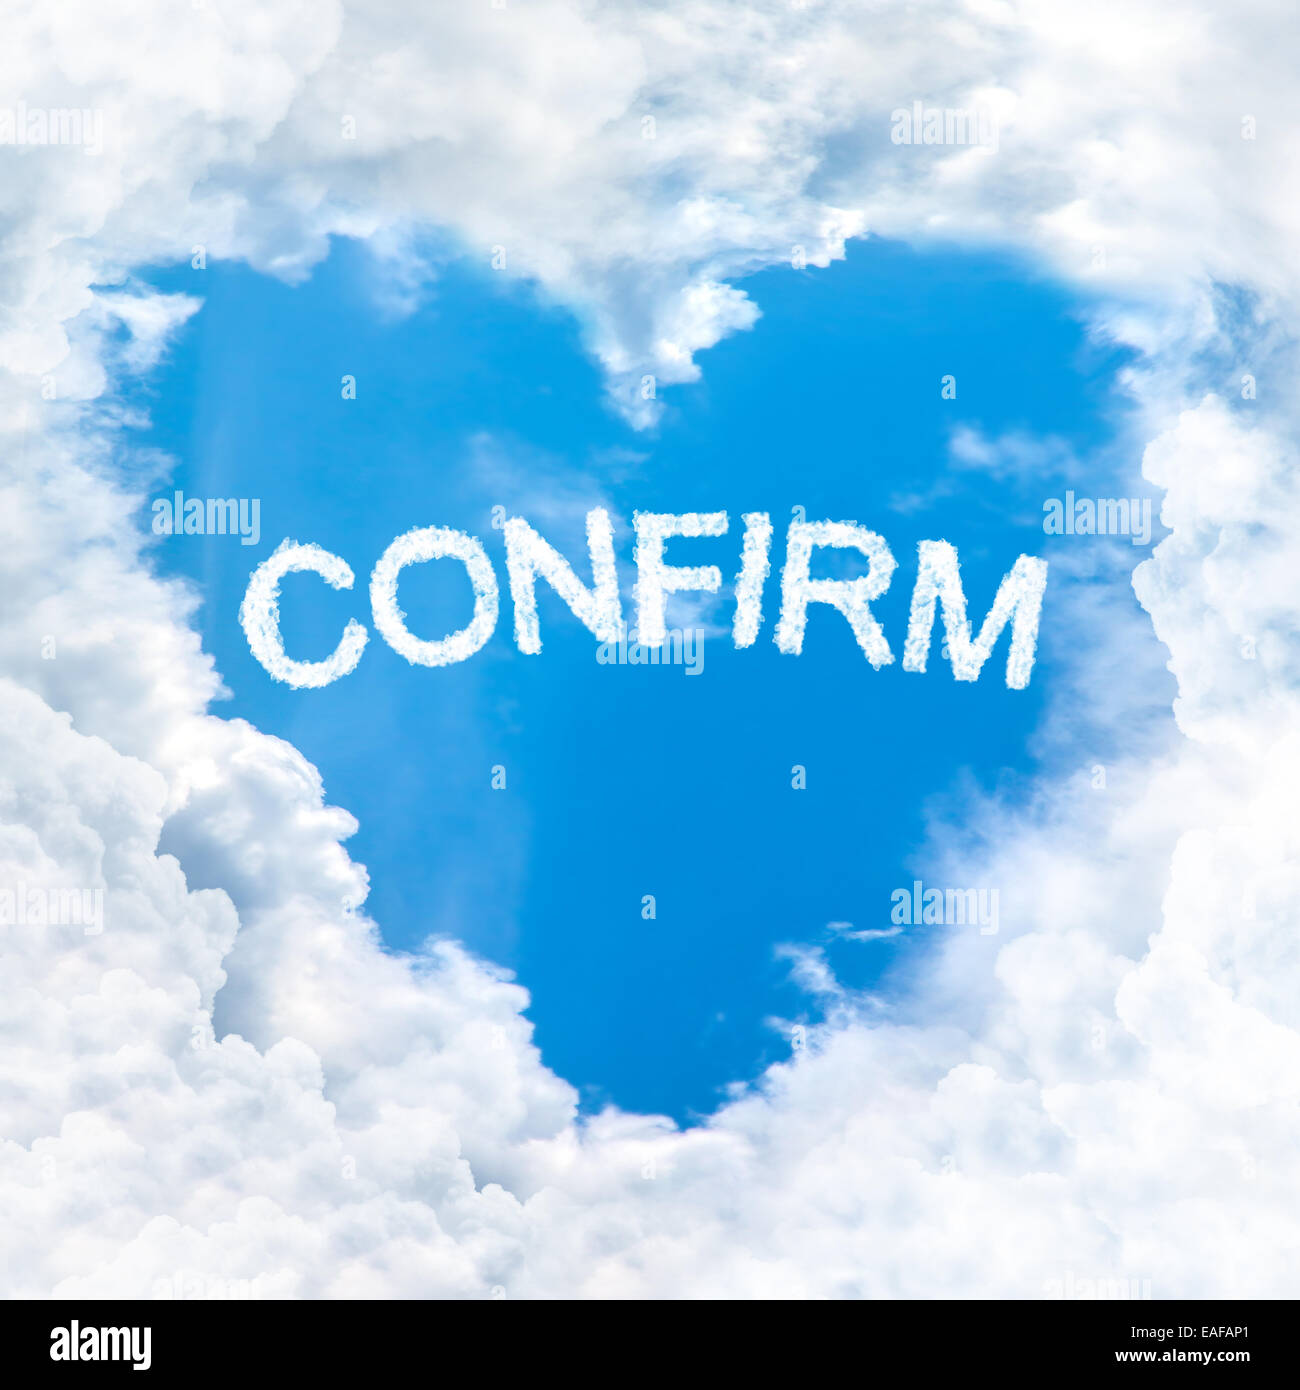 confirm word inside love cloud heart shape blue sky background only Stock Photo